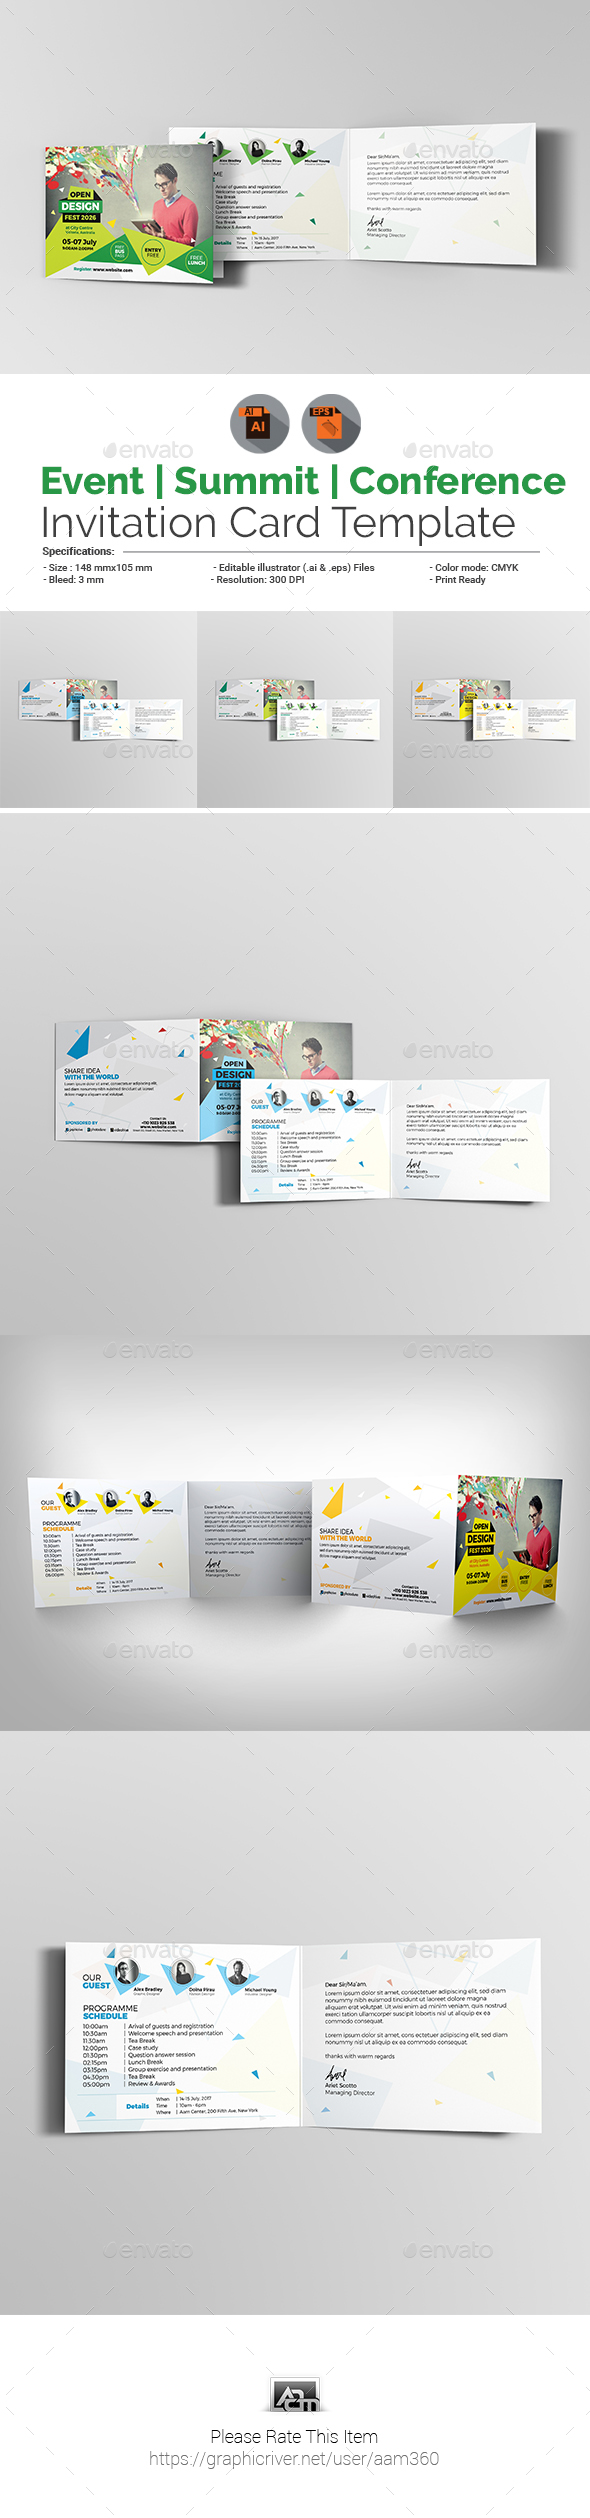 Event/Summit/Conference Invitation Card Template - Cards & Invites Print Templates